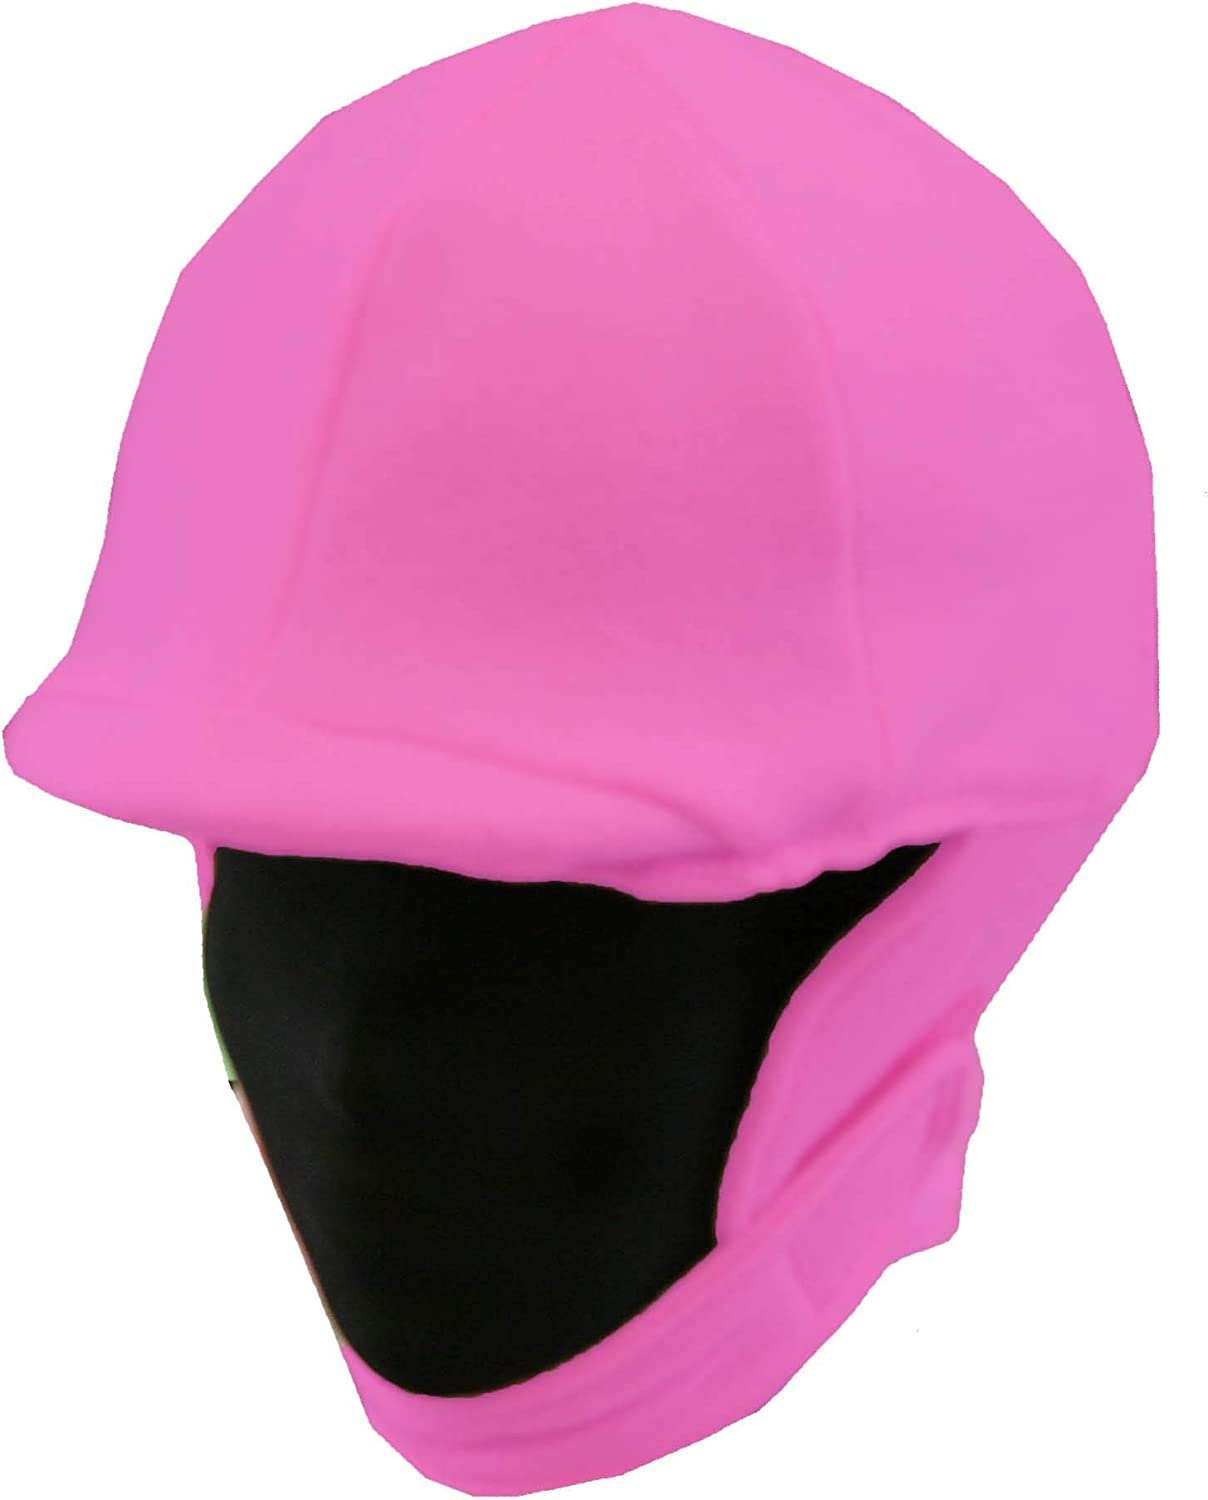 Max 75% OFF Fleece Equestrian Riding Helmet Pink Hot - Limited price Cover